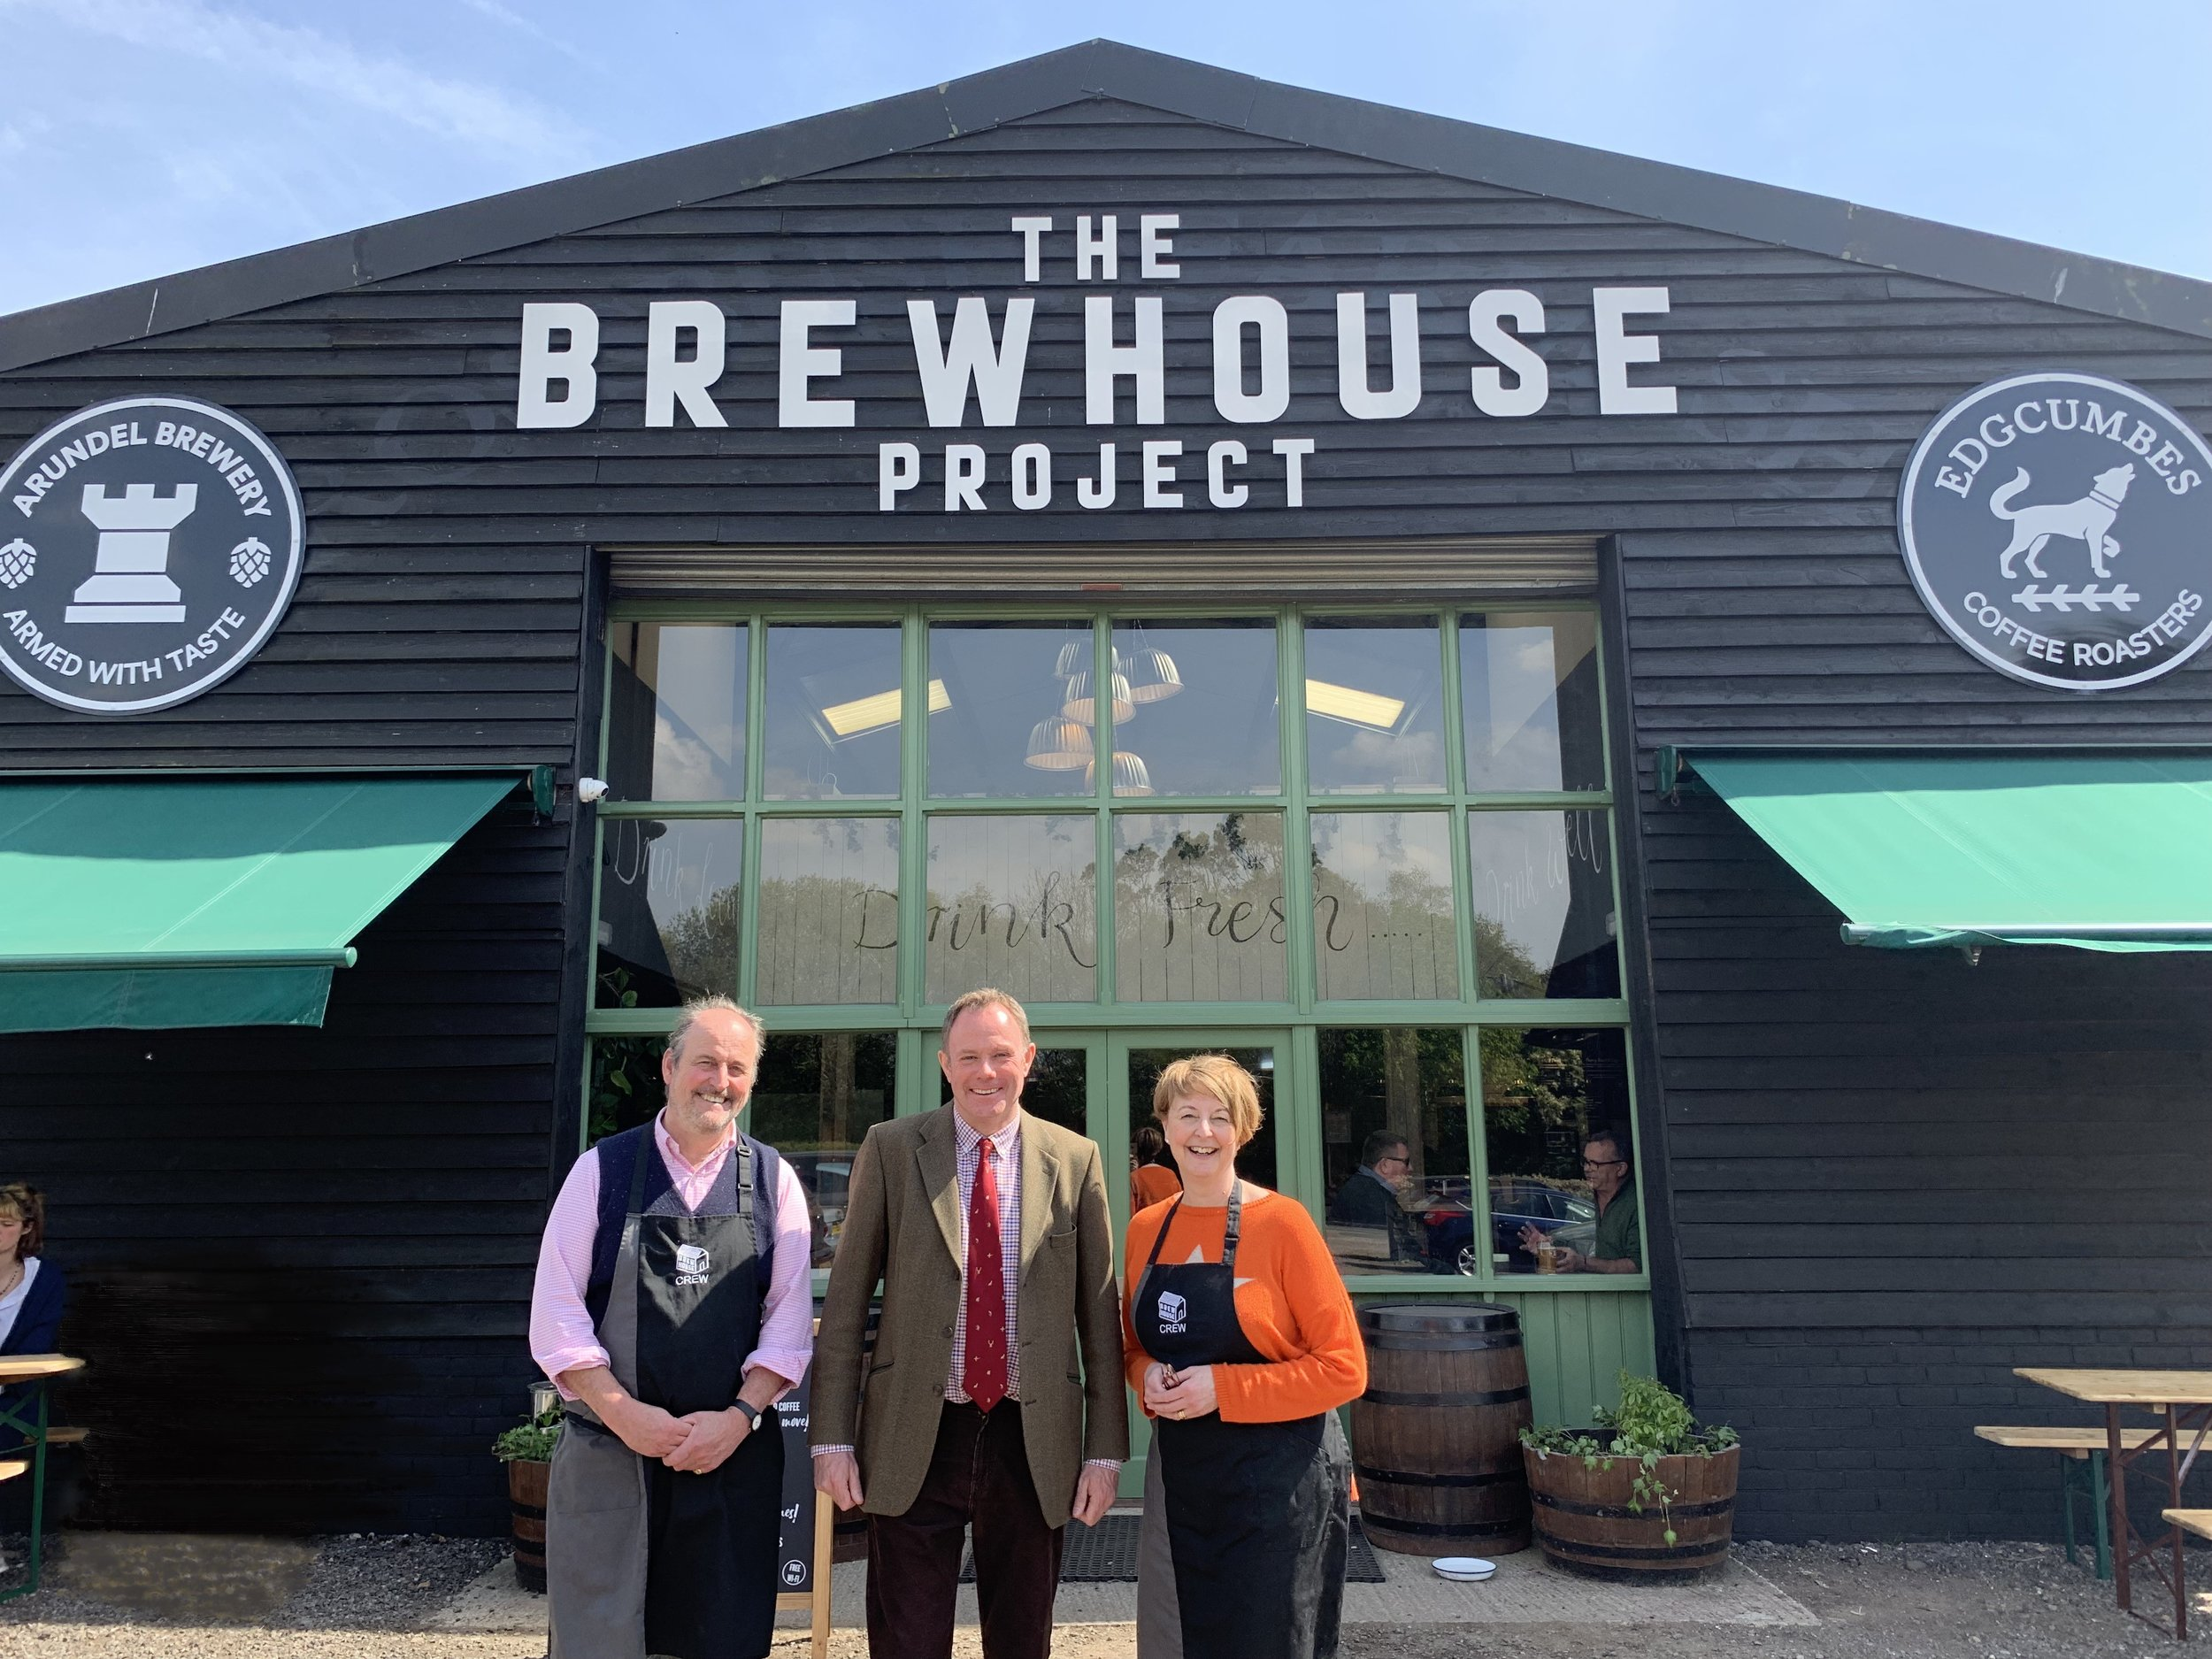 190507 The Brewhouse Project.jpg